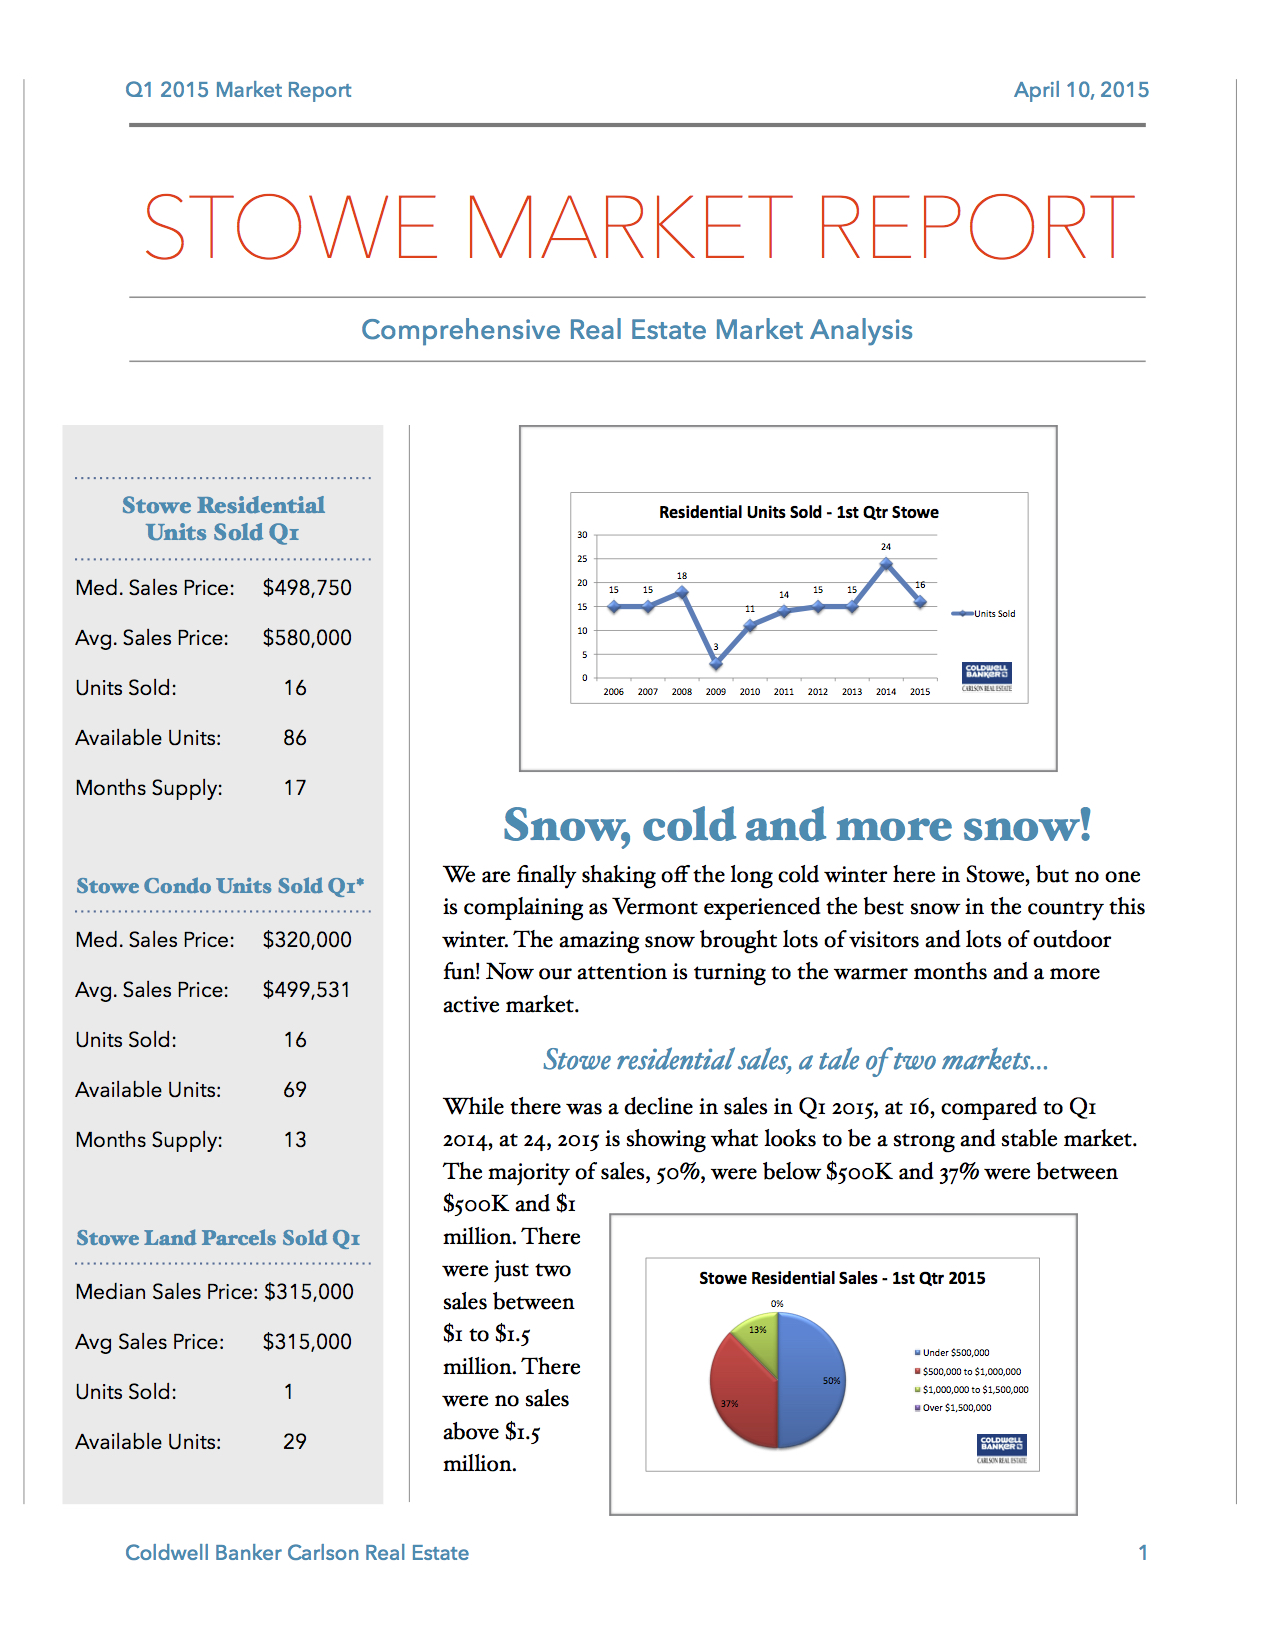 Q1 2015 Stowe VT Residential, Condo & Land Real-Estate Market Report.jpg